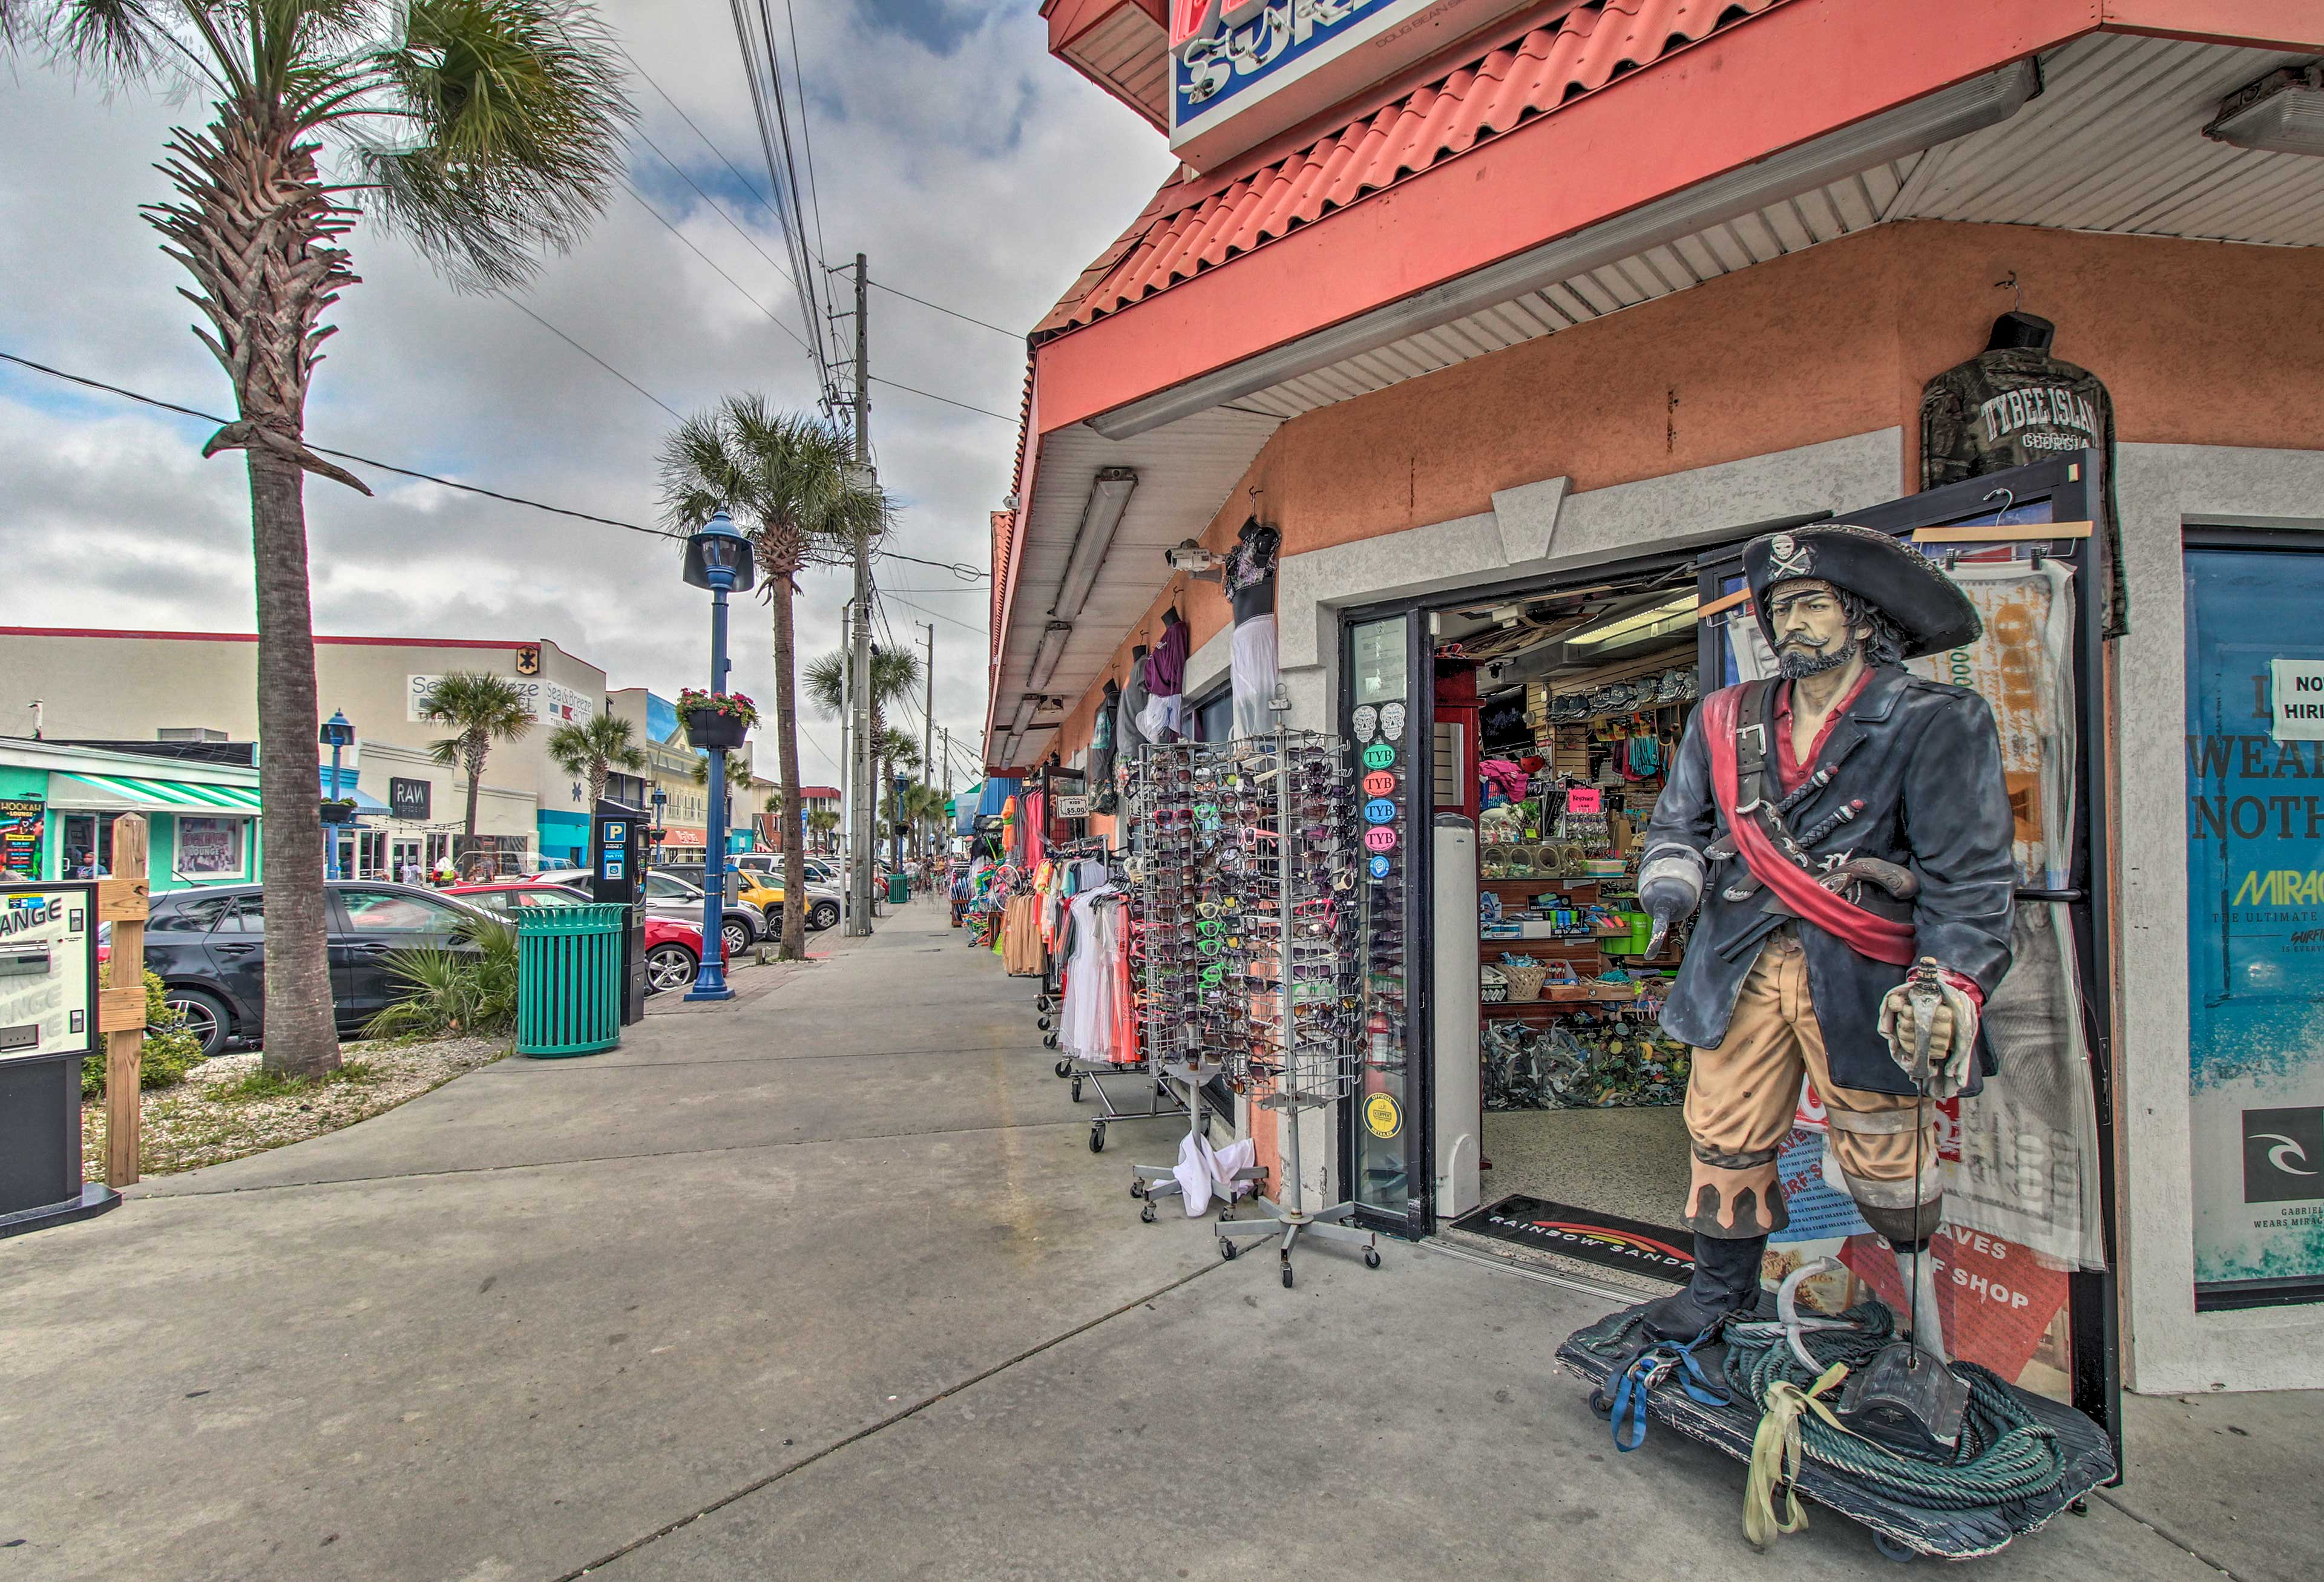 Walk to South Beach for shopping and dining.